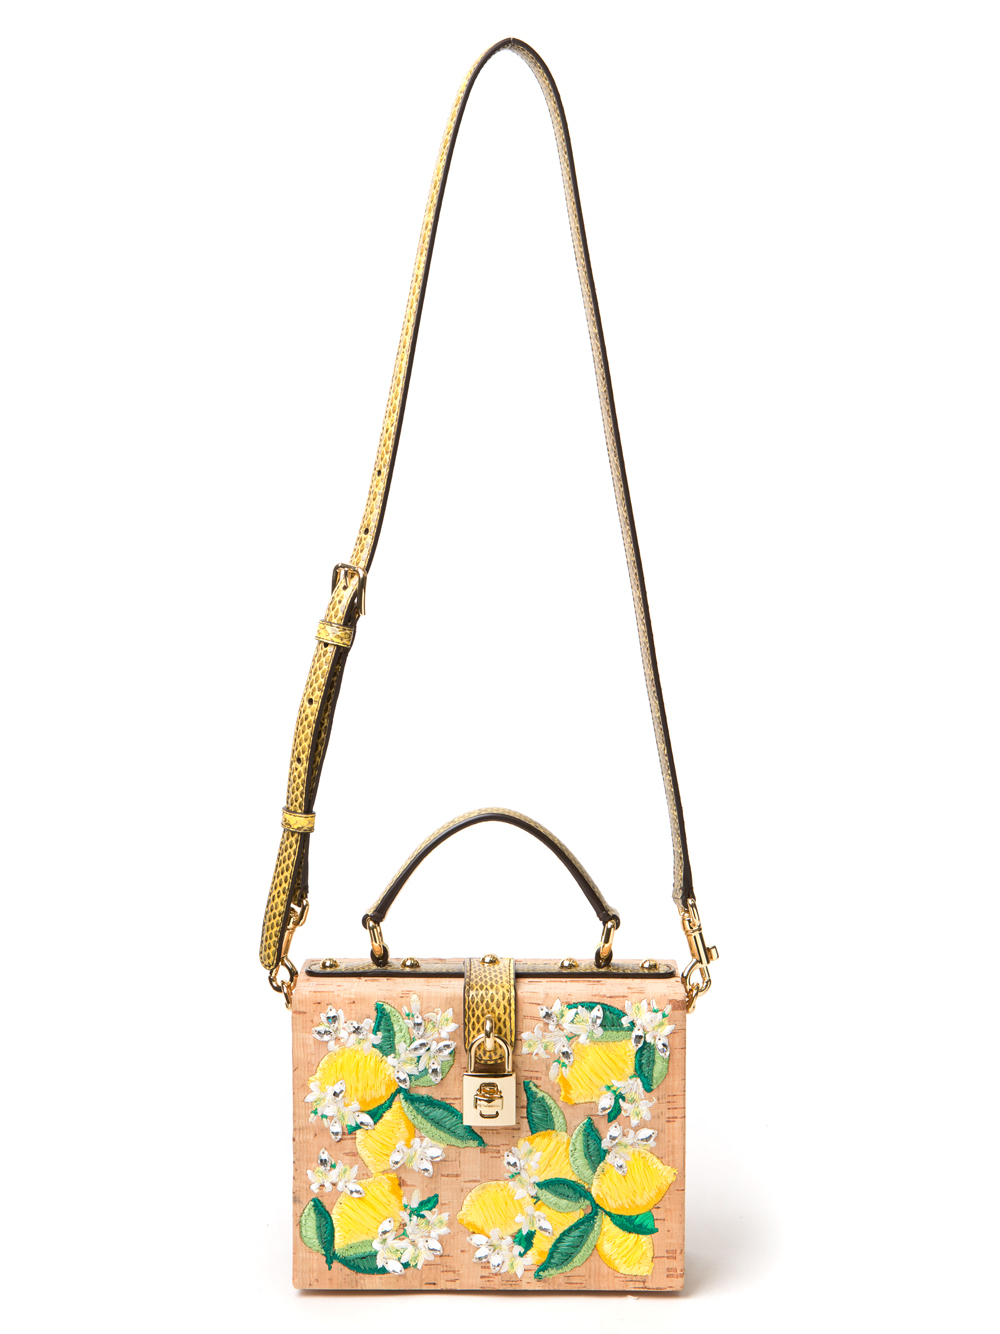 Lyst - Dolce   Gabbana Lemon Cork Tote in Yellow ae79d68187f07